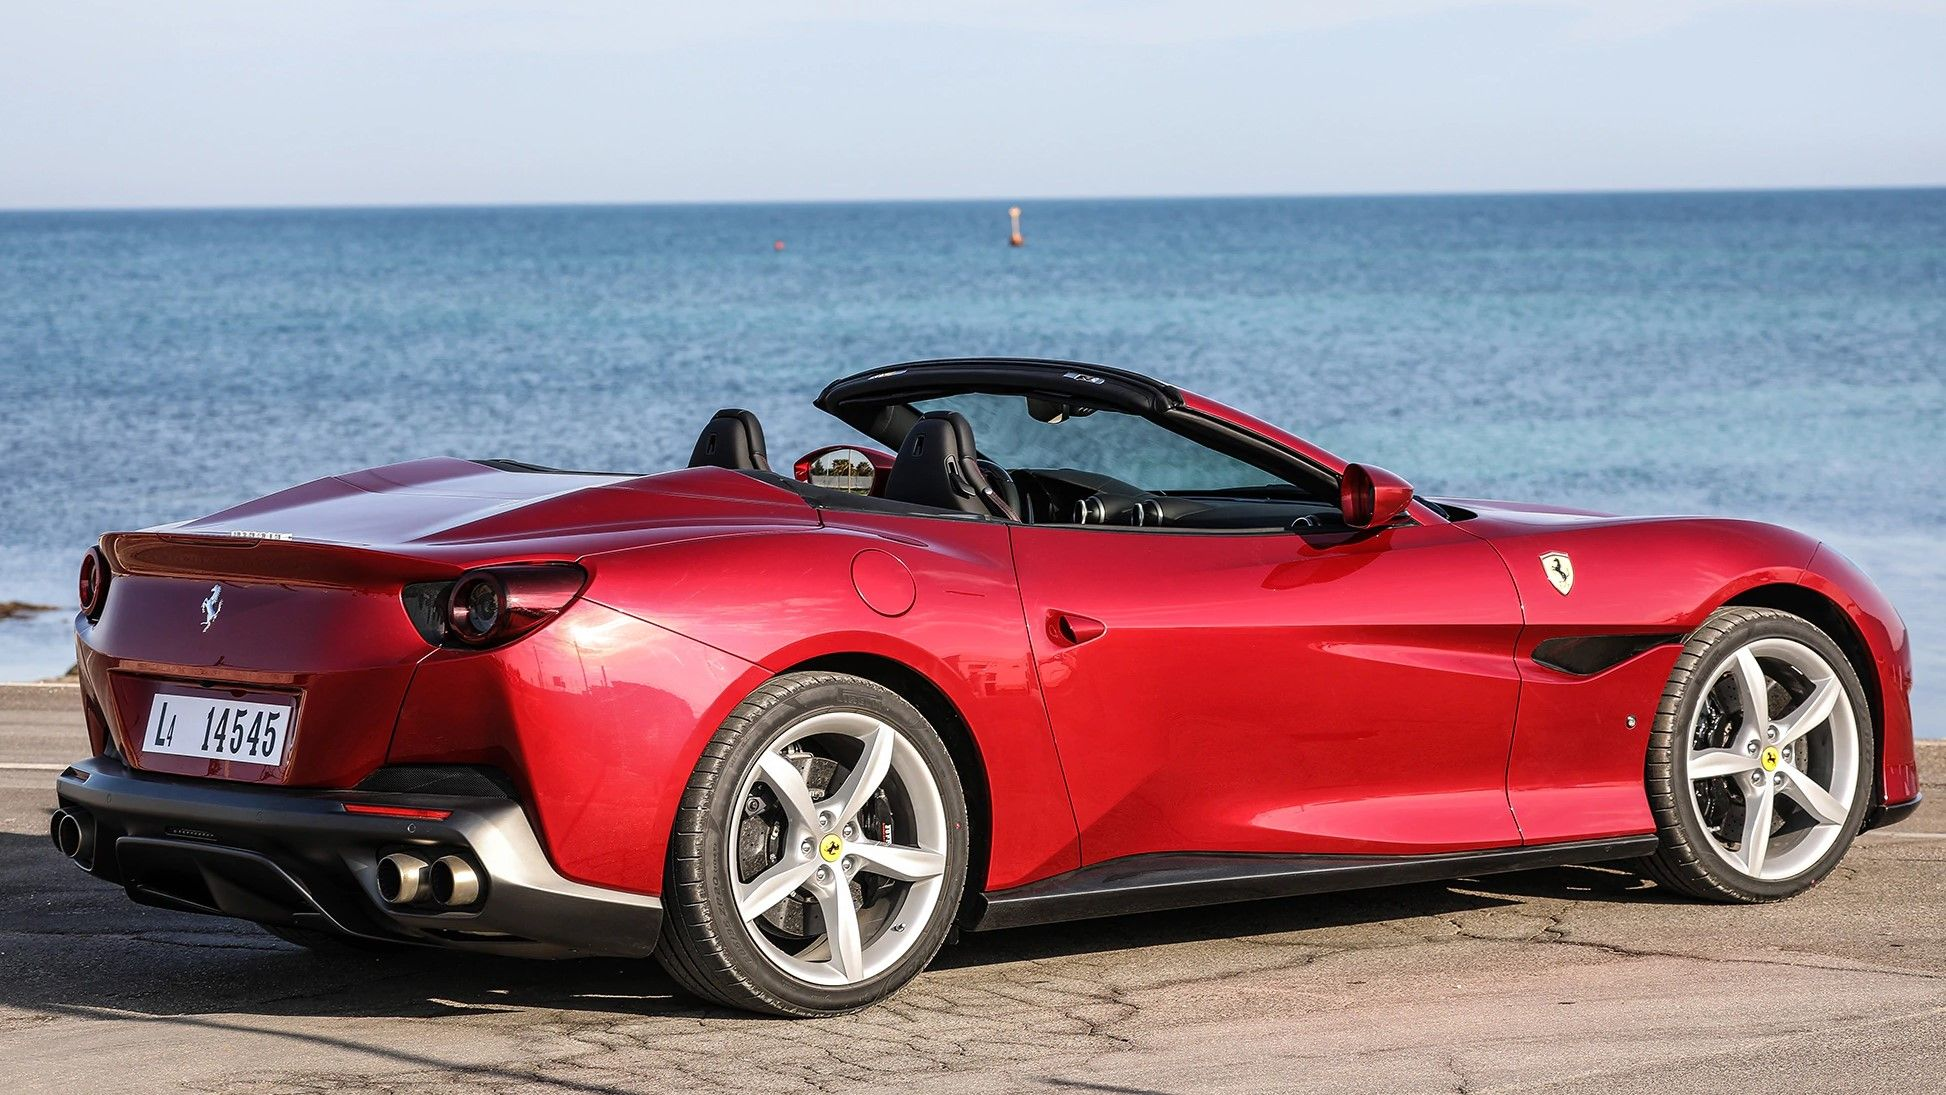 2020 Ferrari Portofino Rear Three-quarter View